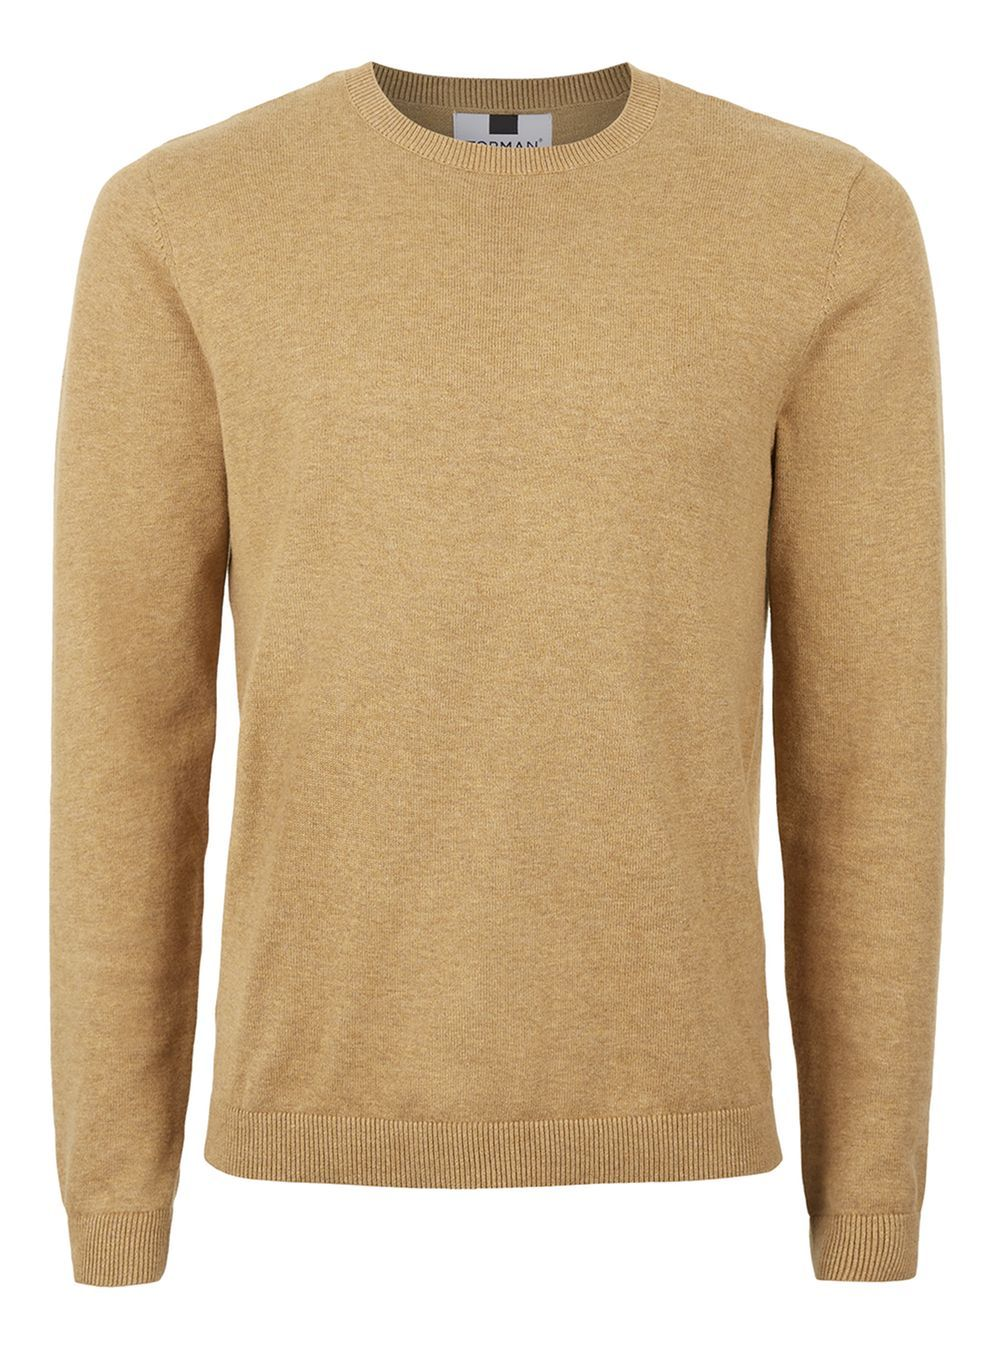 Tan Marl Slim Fit Sweater - Cardigans & Sweaters - Clothing